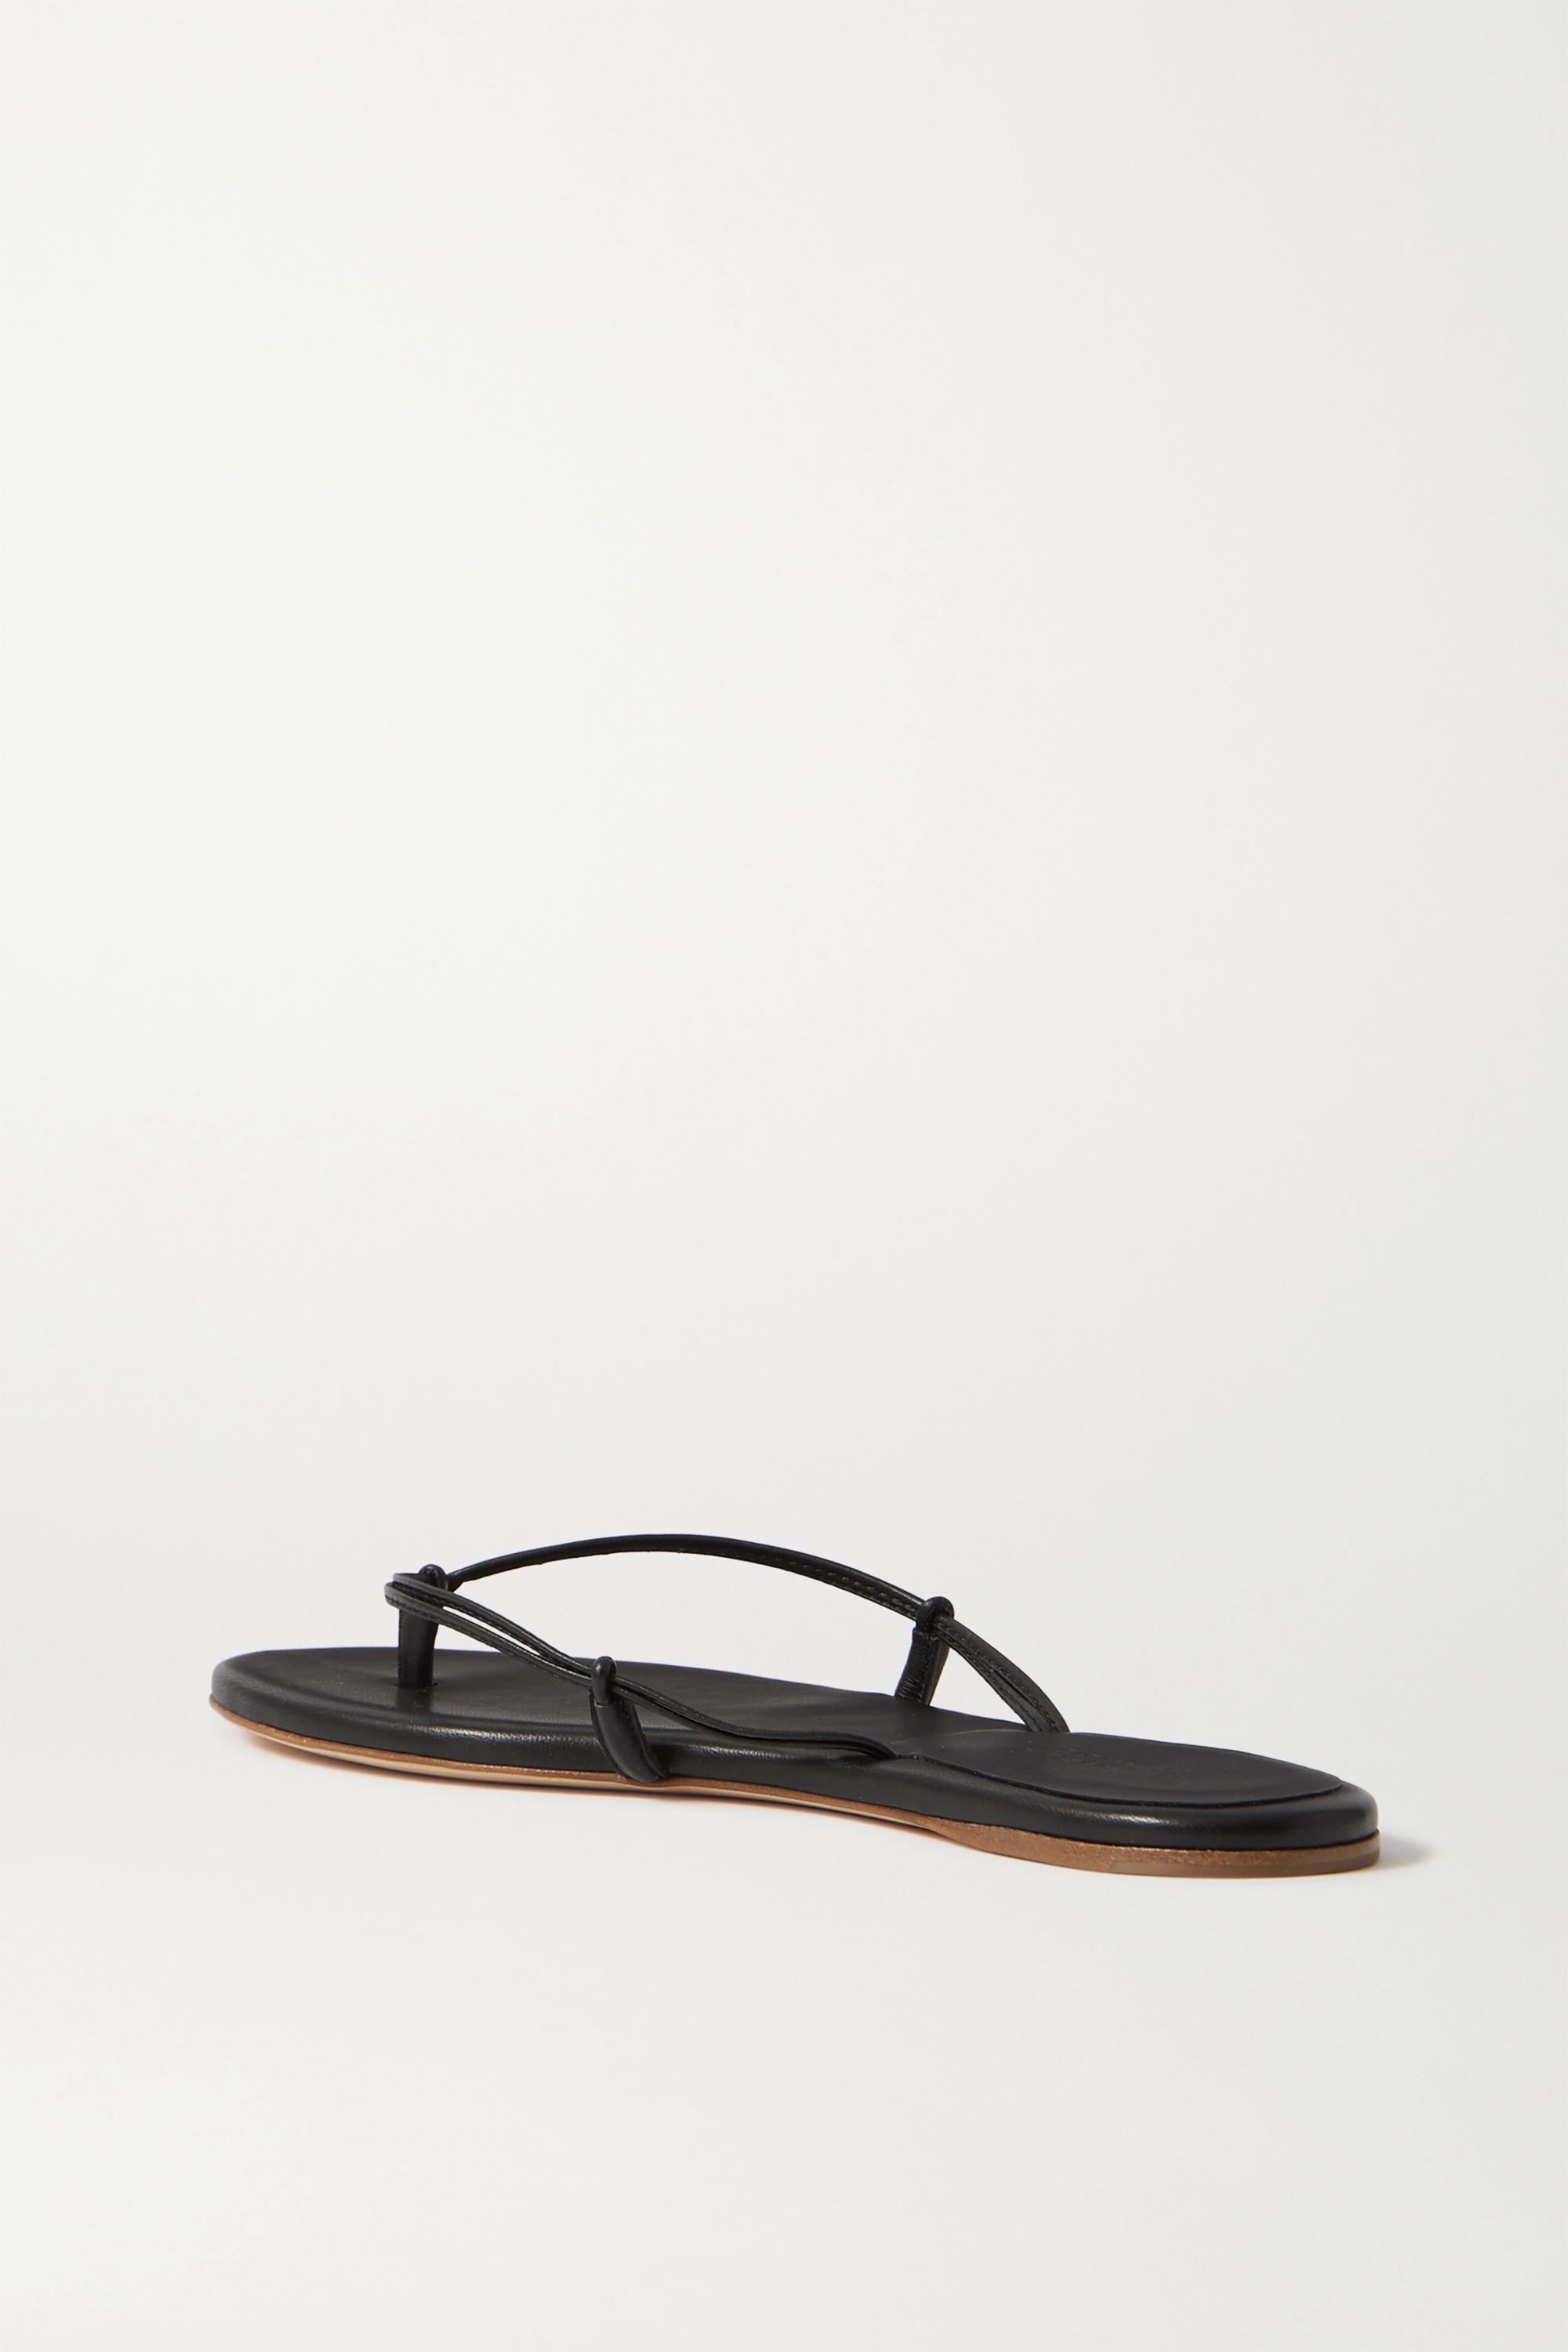 Gabriela Hearst Leather sandals